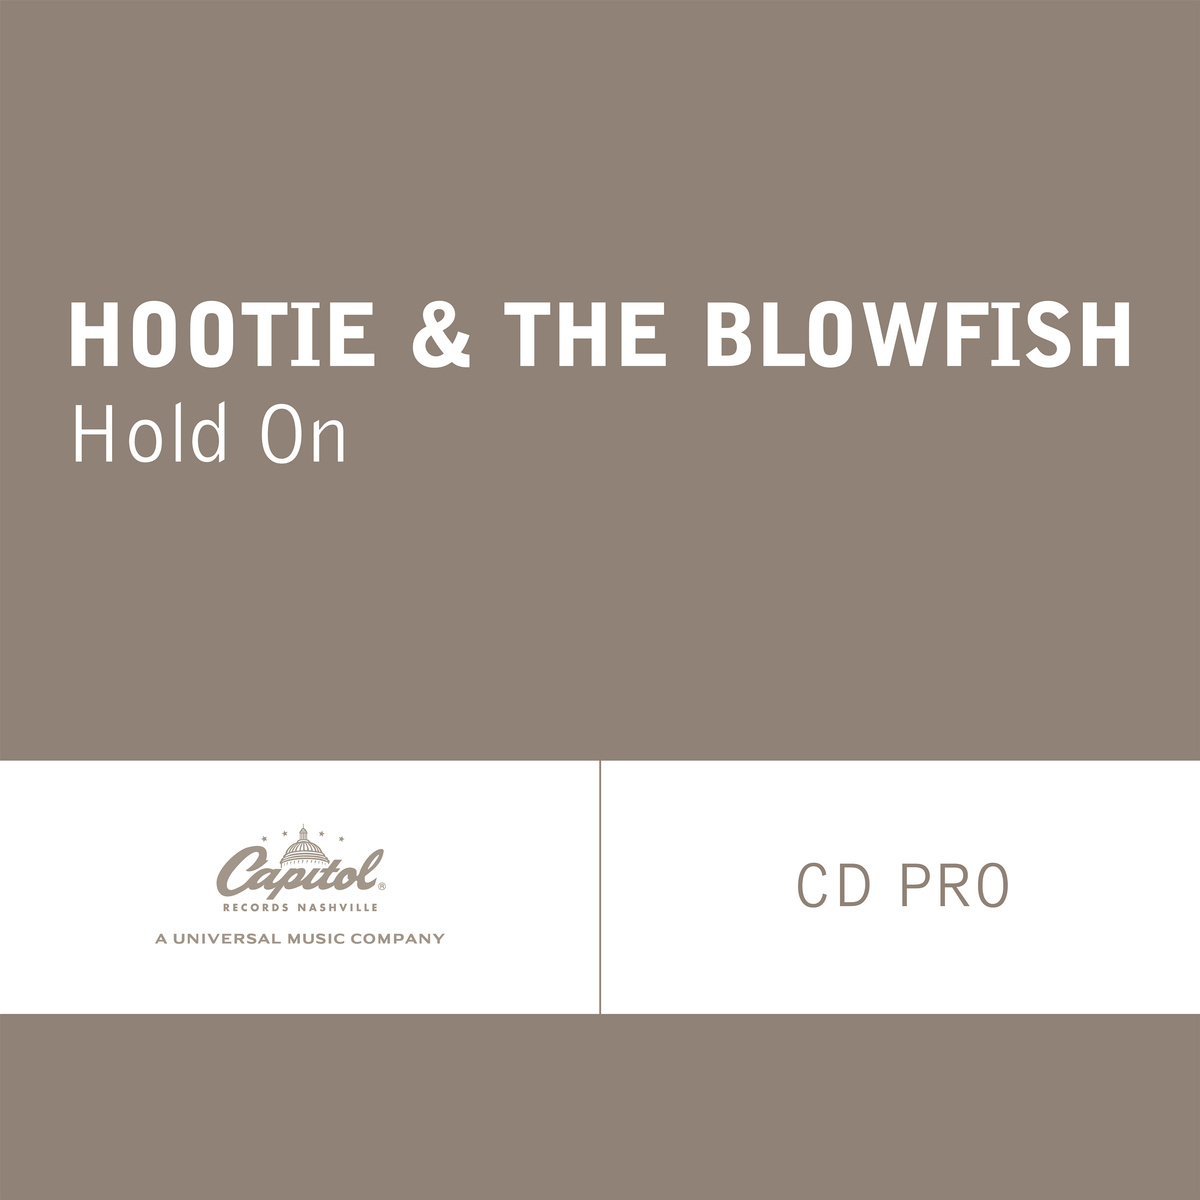 hootie-the-blowfish-hold